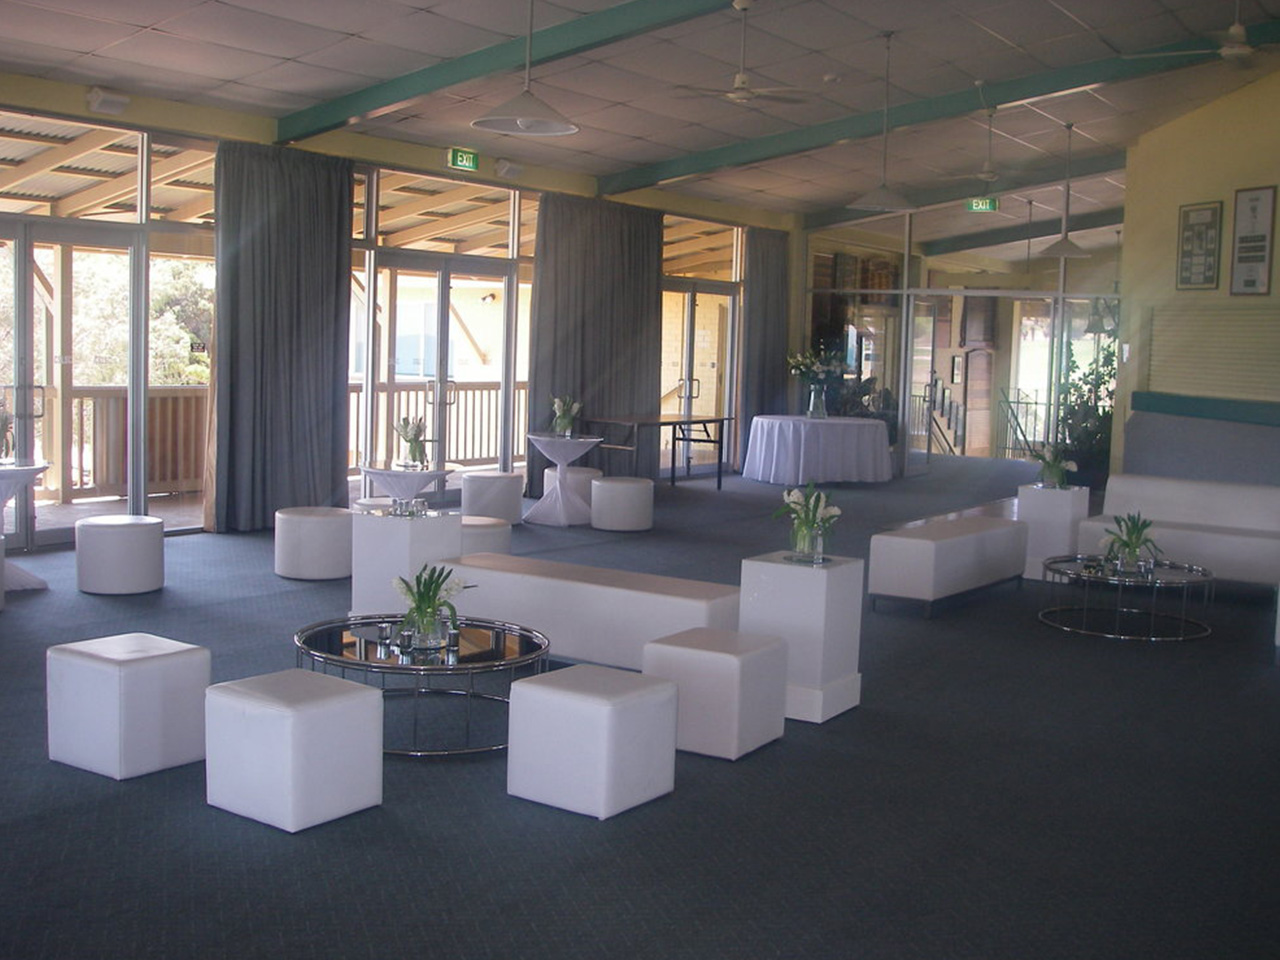 White Chairs With Tables Inside The Function Room